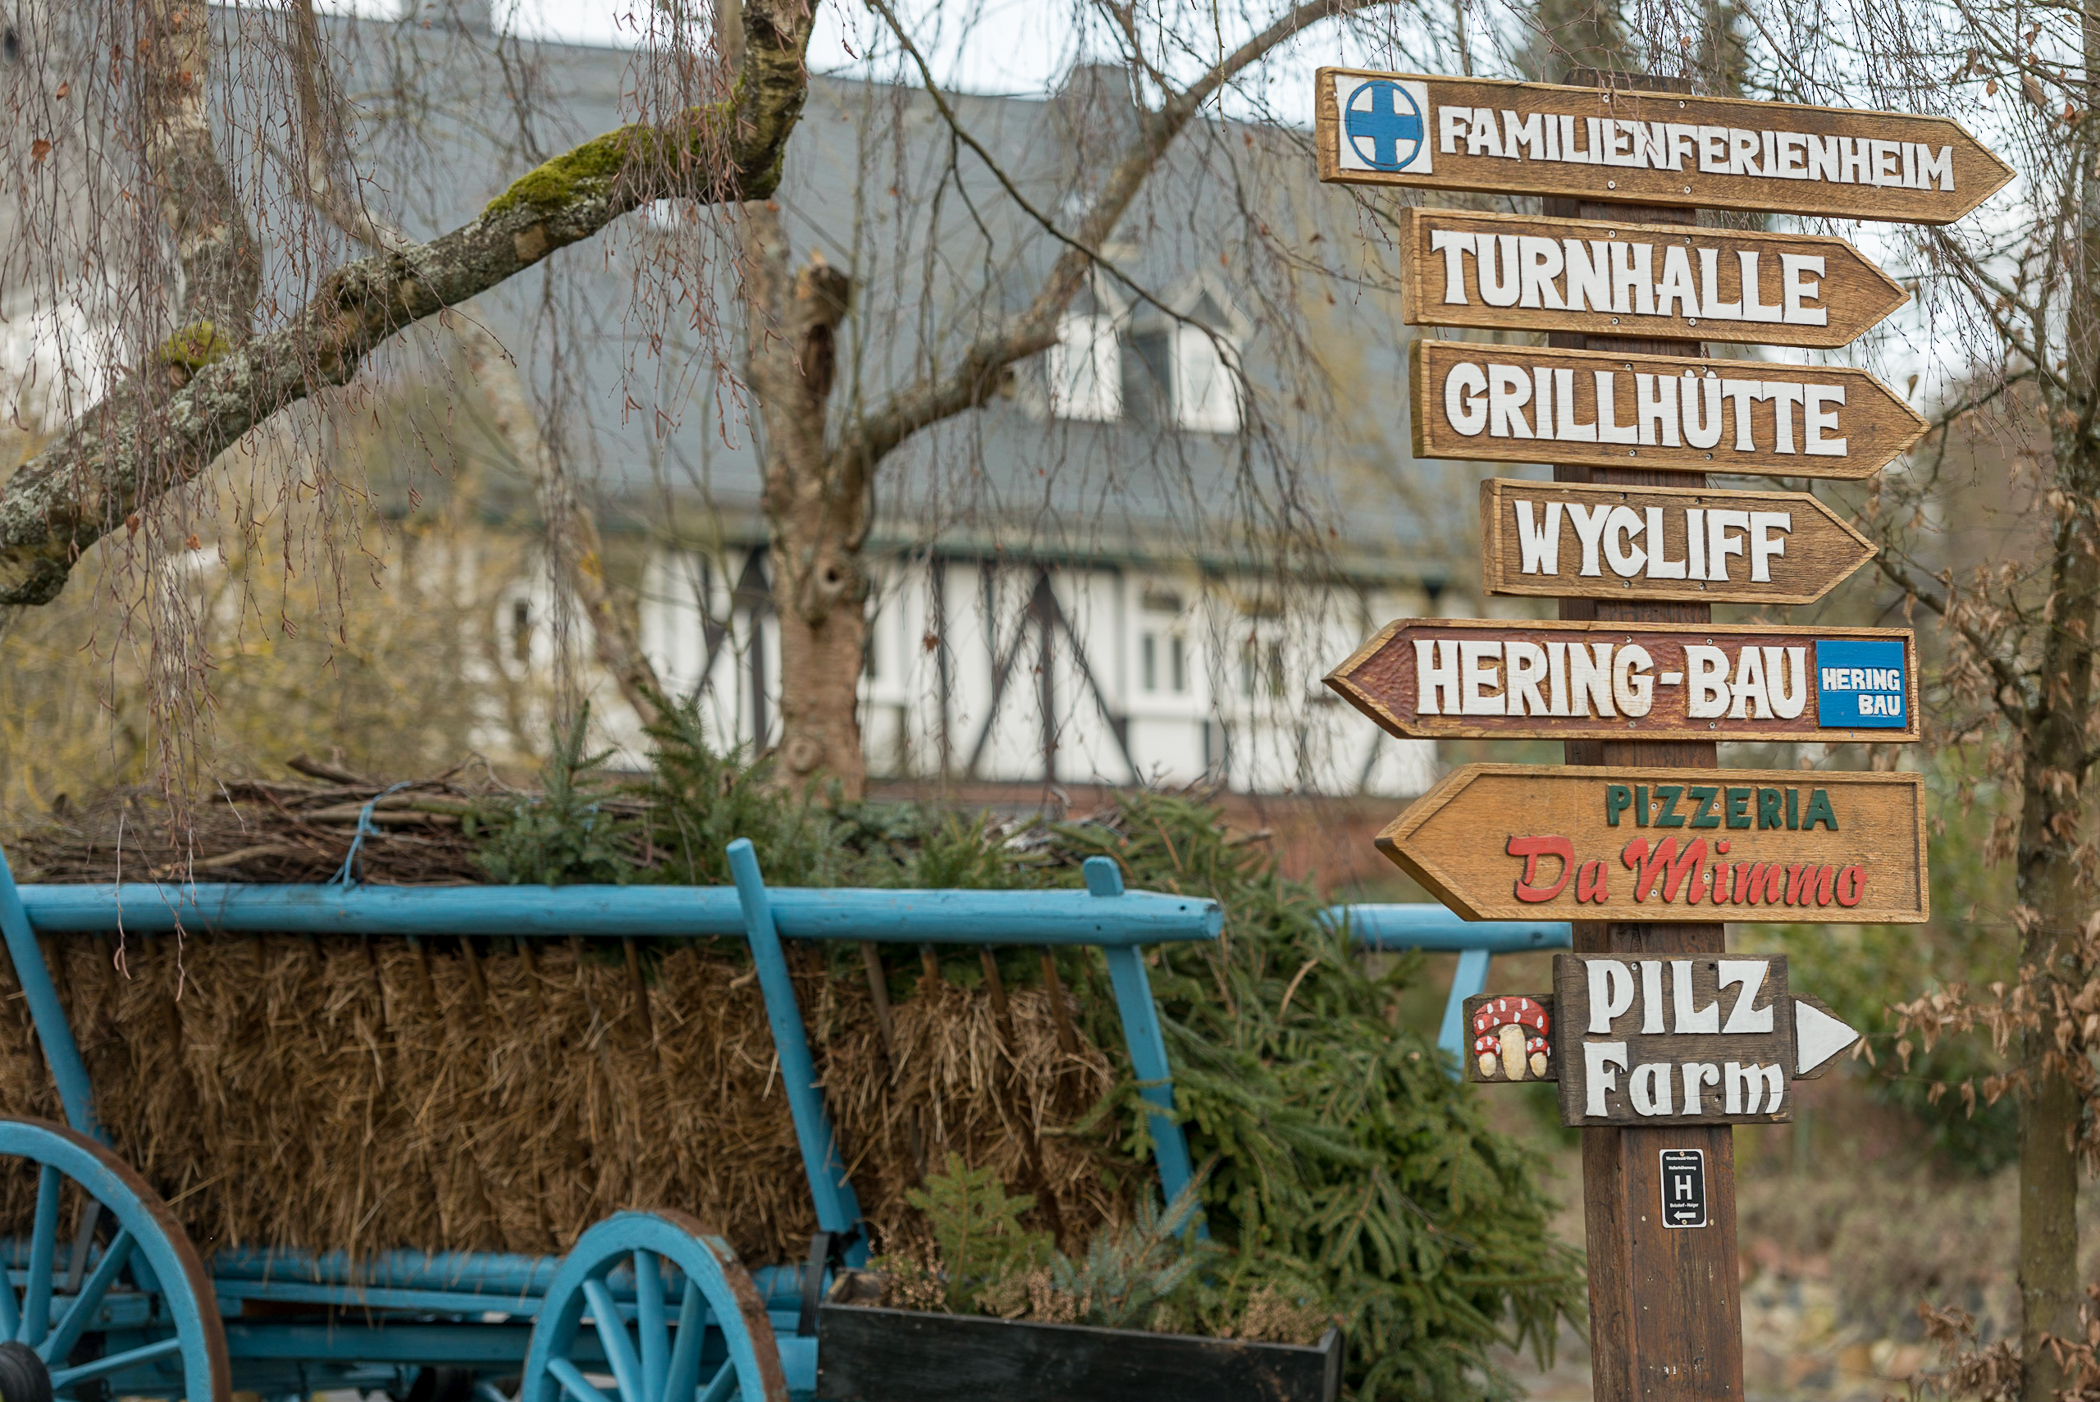 Information signs in the center of Holzhausen, Germany, tell drivers the locations of various firms and organizations located in the village. Typical half-timbered and slate-shingled homes are visible in the background.